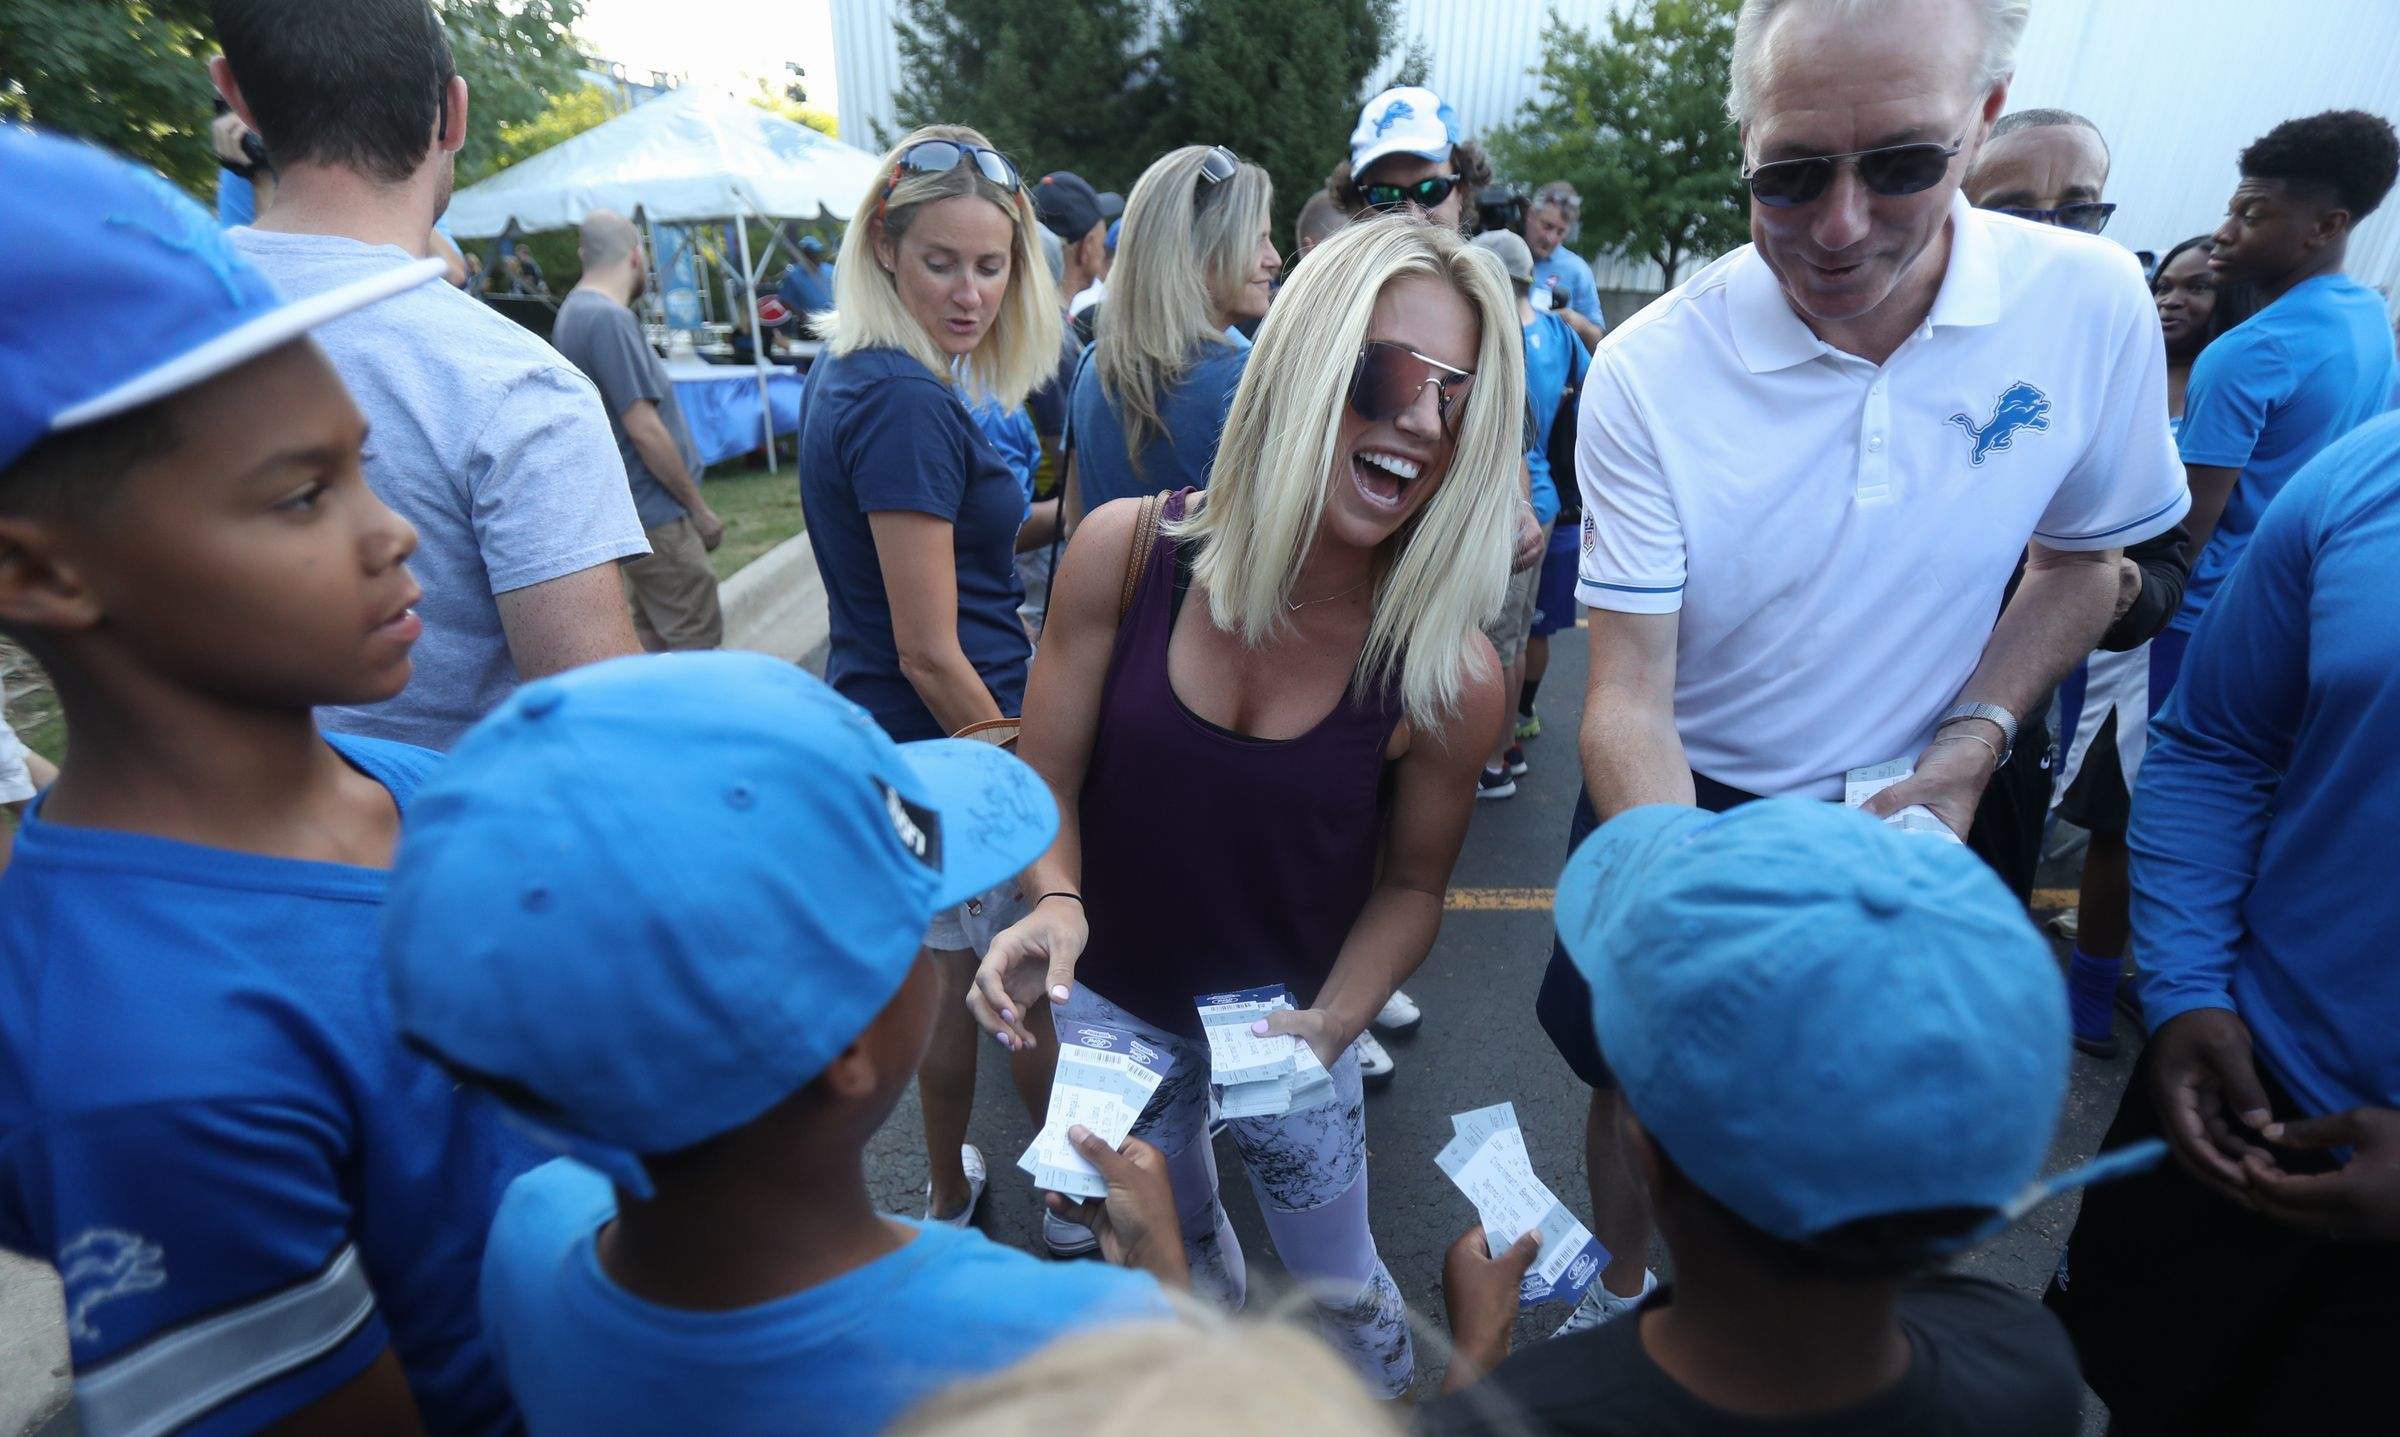 Kelly Stafford, wife of Detroit Lions QB, to have brain surgery Wednesday